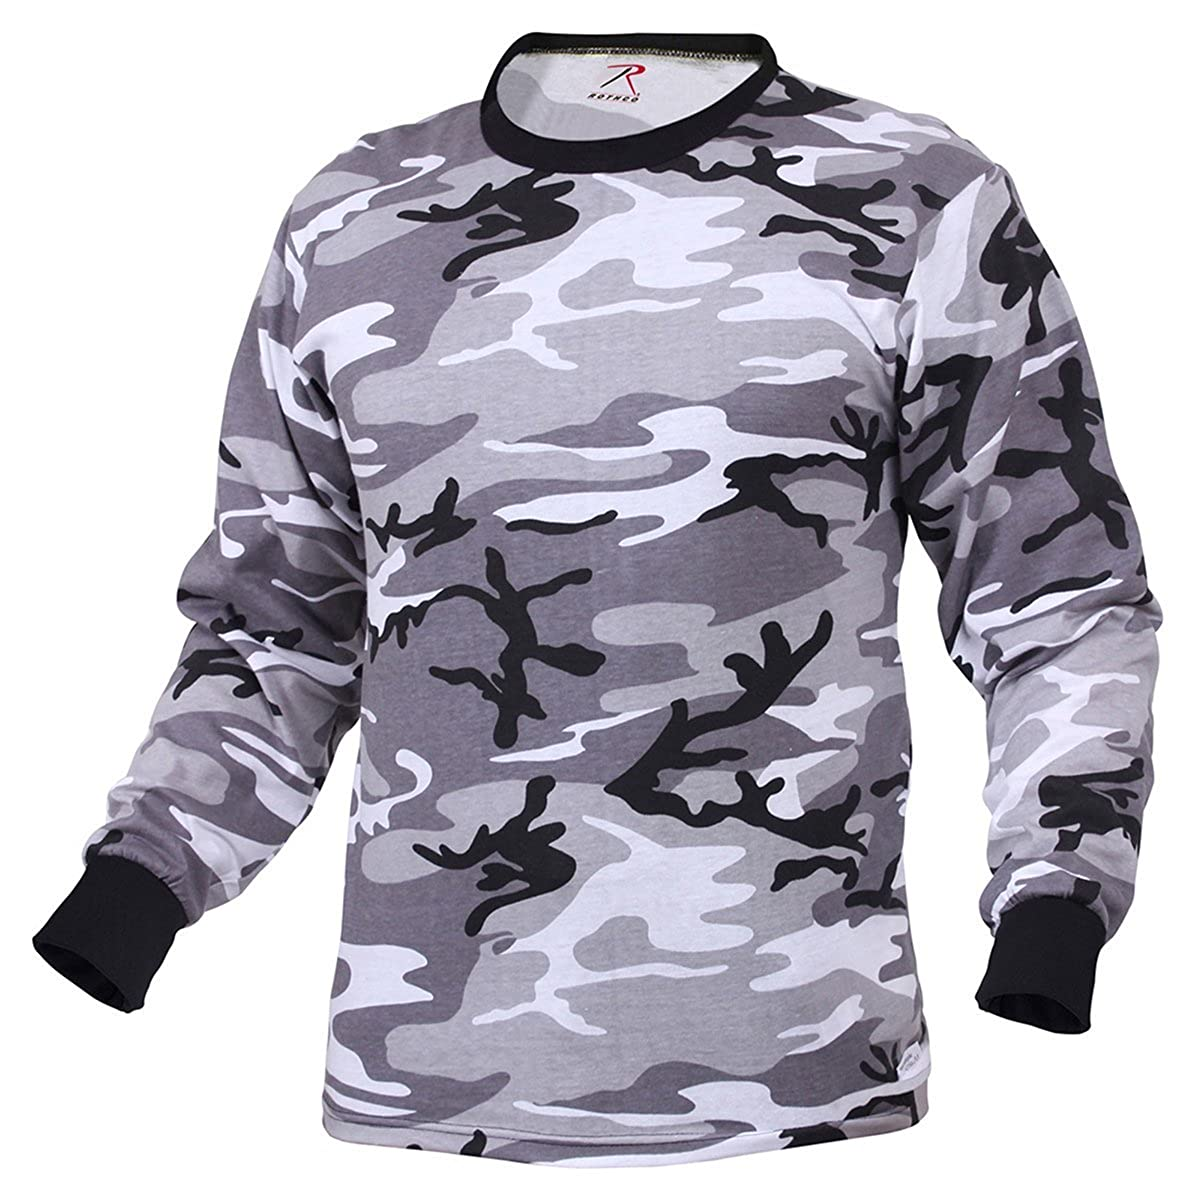 Rothco Mens Camouflage T-Shirt - Long Sleeve, City Camo, Medium RSR Group Inc 67790MED